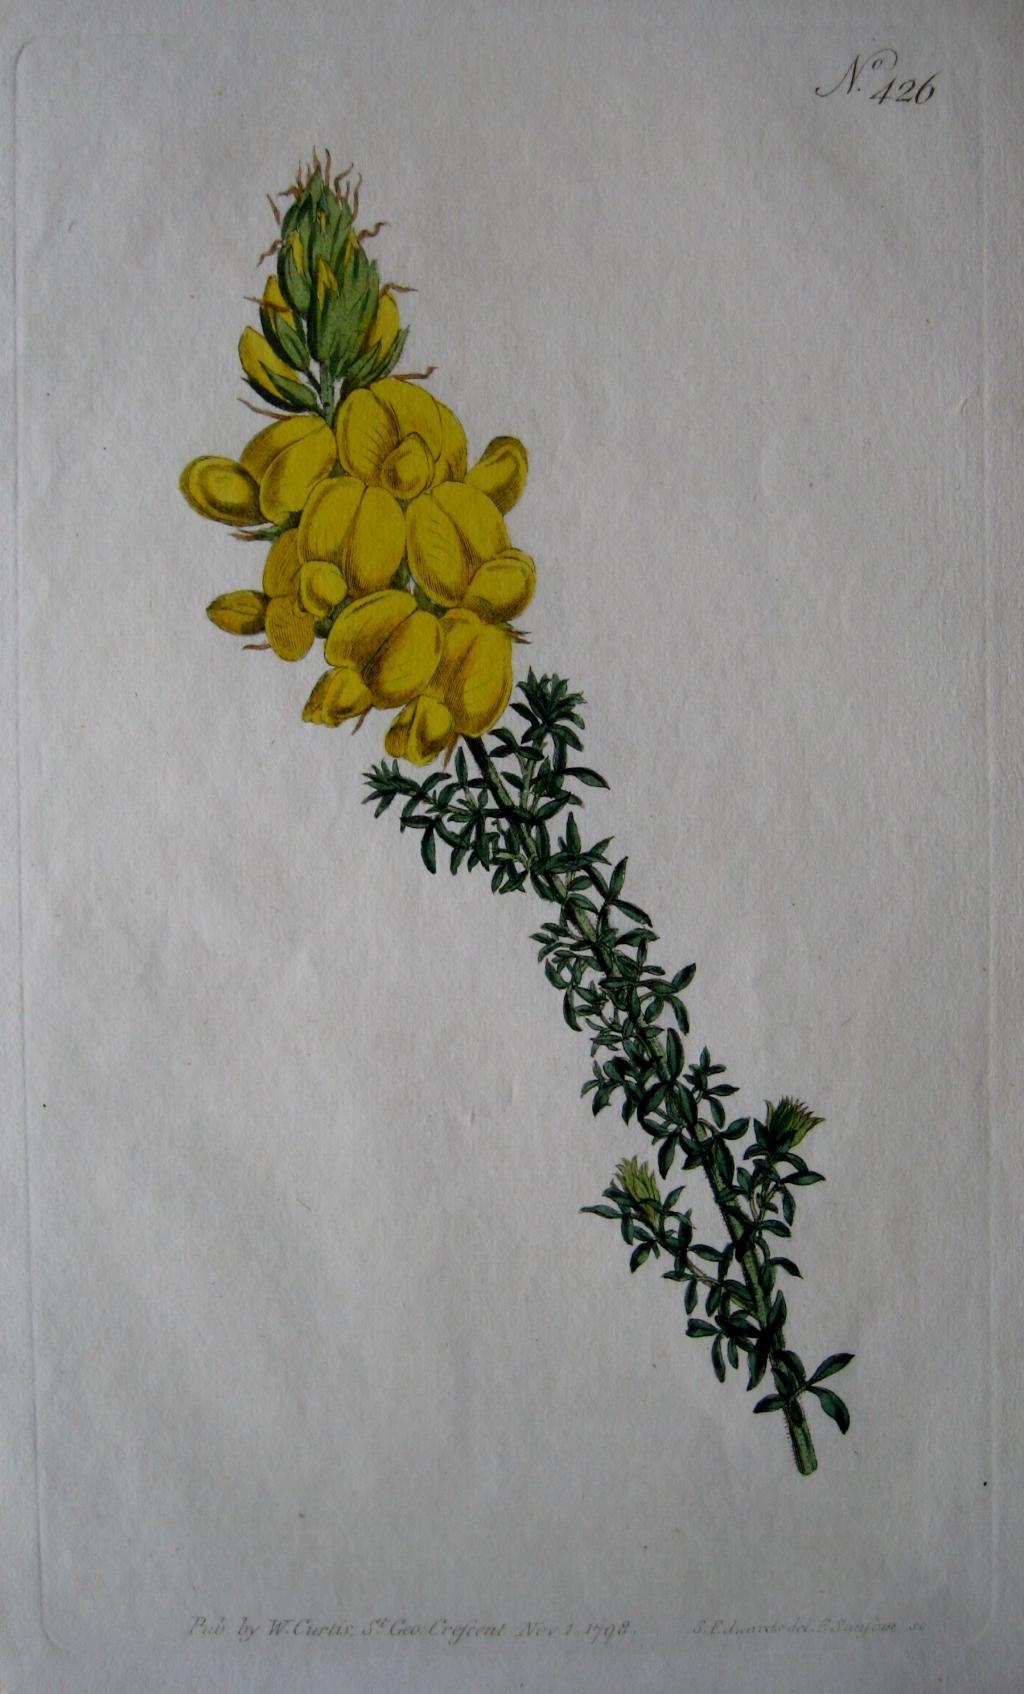 LEAFY CYTISUS BY WILLIAM CURTIS C1798